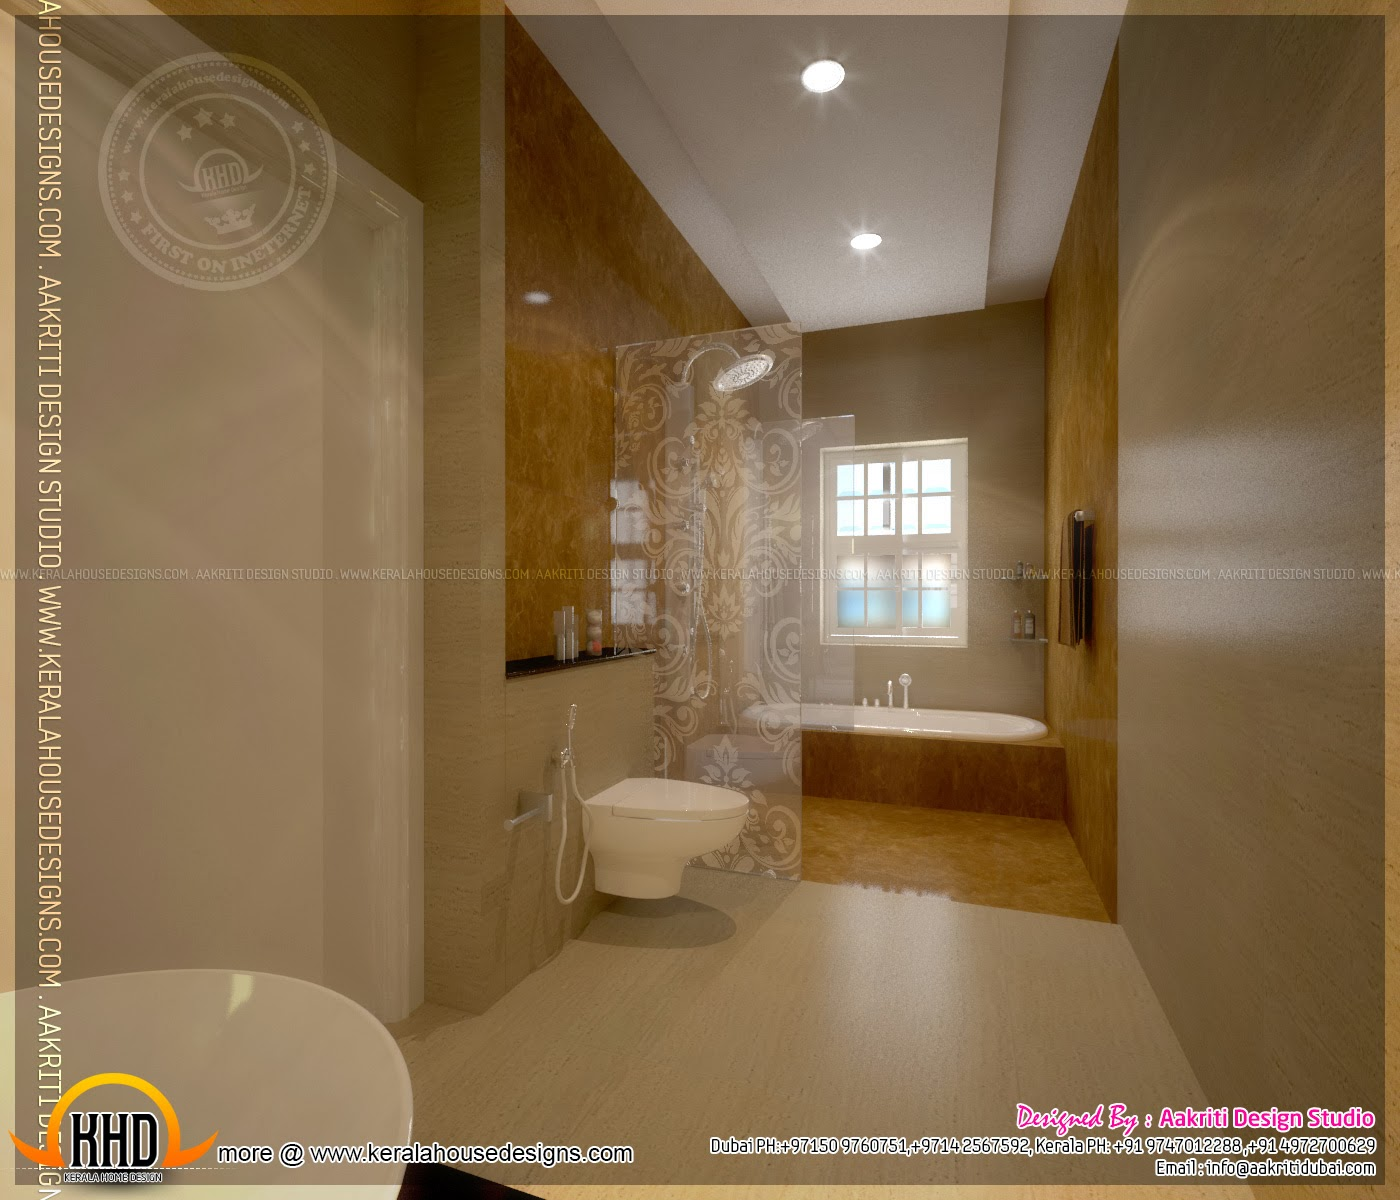 Master bedroom and bathroom interior design kerala home for House bathroom design